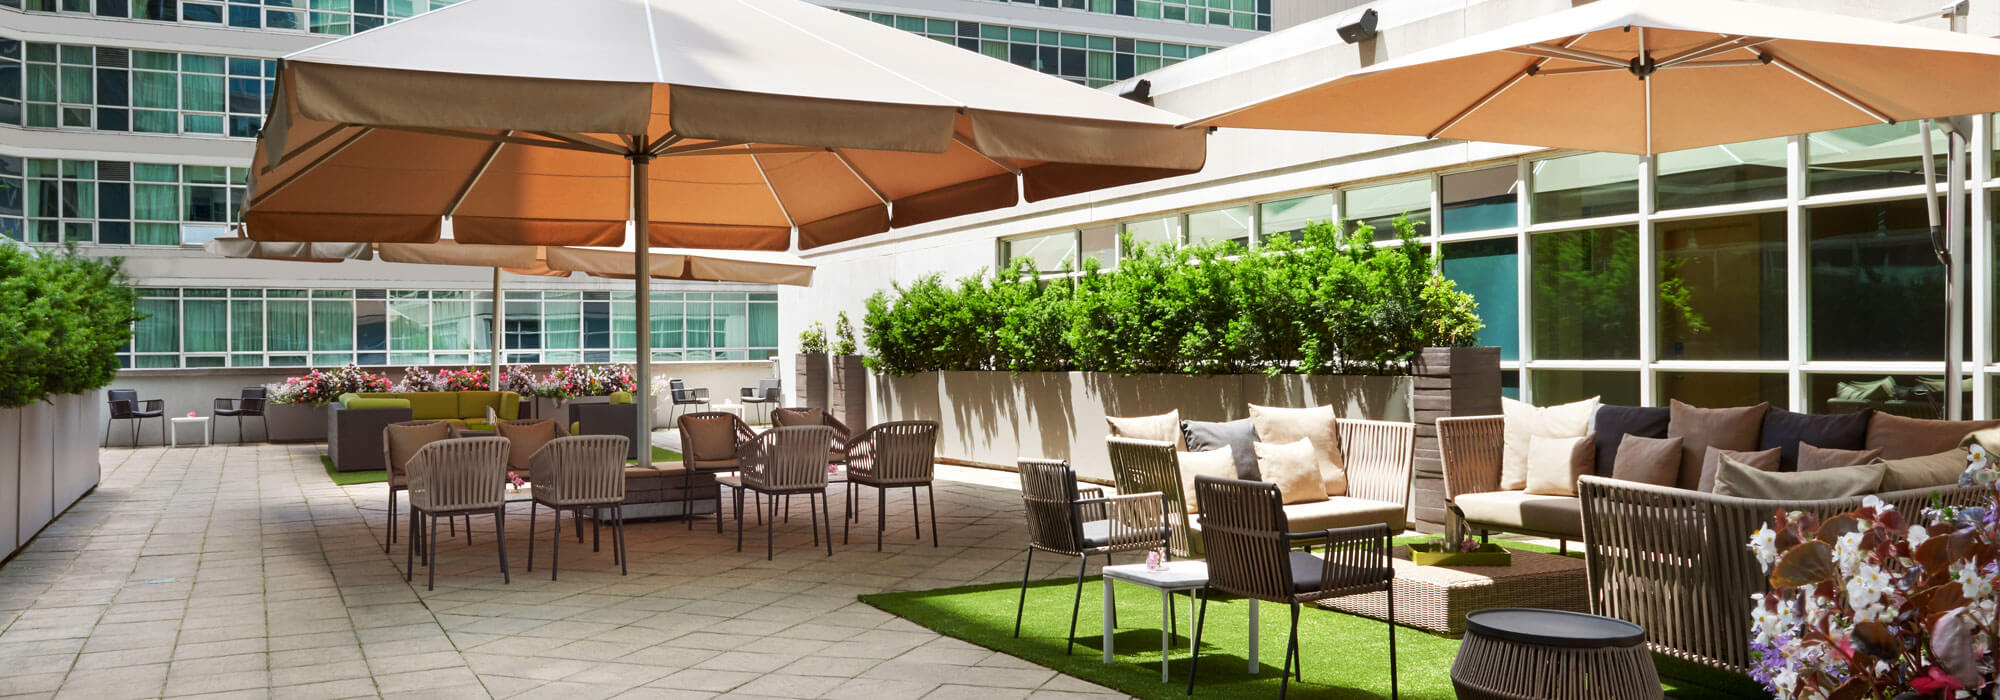 SoHo Hotel amenities outdoor terrace adjacent to meeting rooms